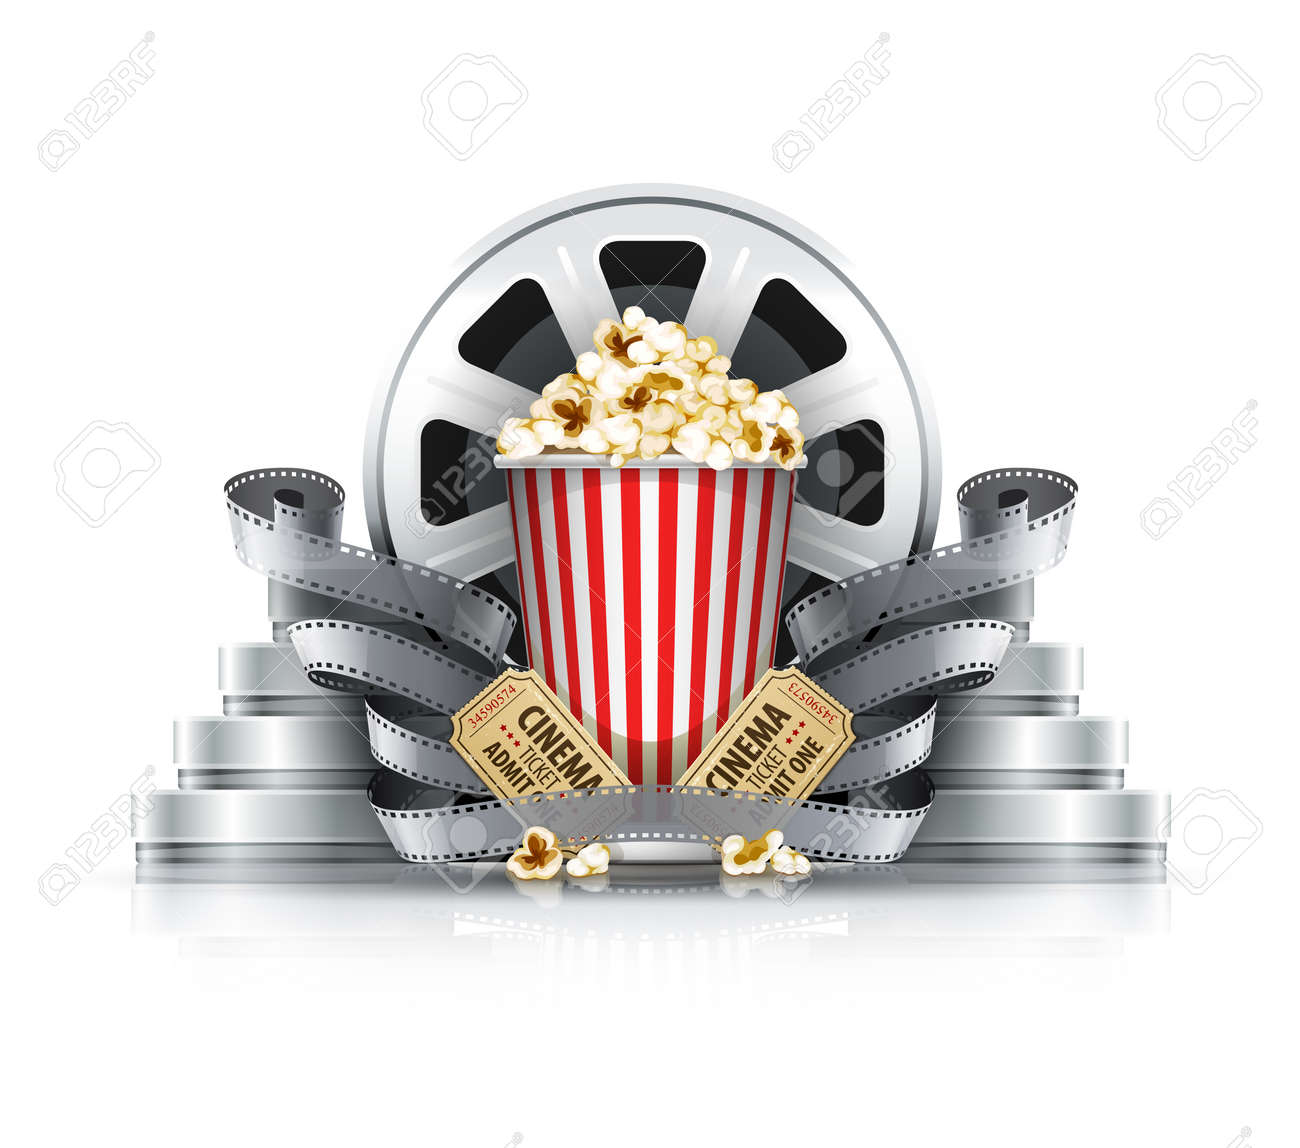 Popcorn film-strips and disks with cinema tickets to movie theater. Eps10 vector illustration. Isolated on white background Stock Vector - 34237680